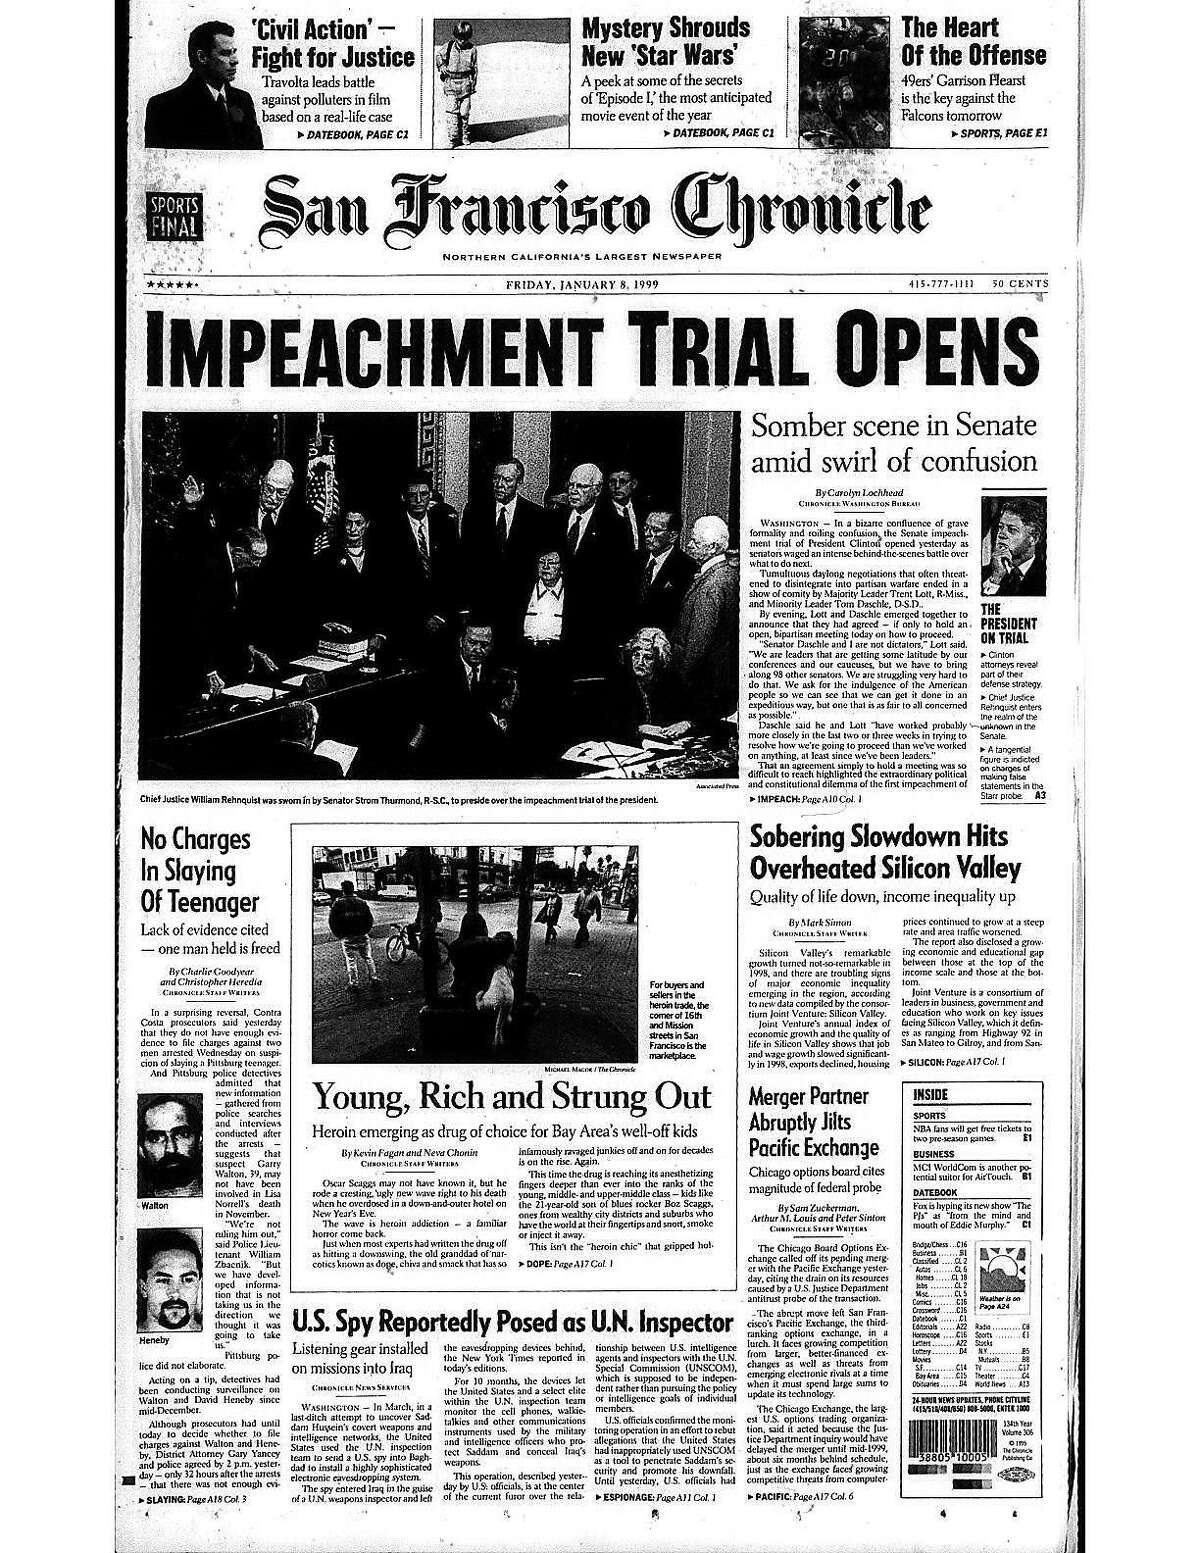 Historic Chronicle Front Pages January 8, 1999 President Bill Clinton's impeachment trial begins in the United States Senate Chron365, Chroncover